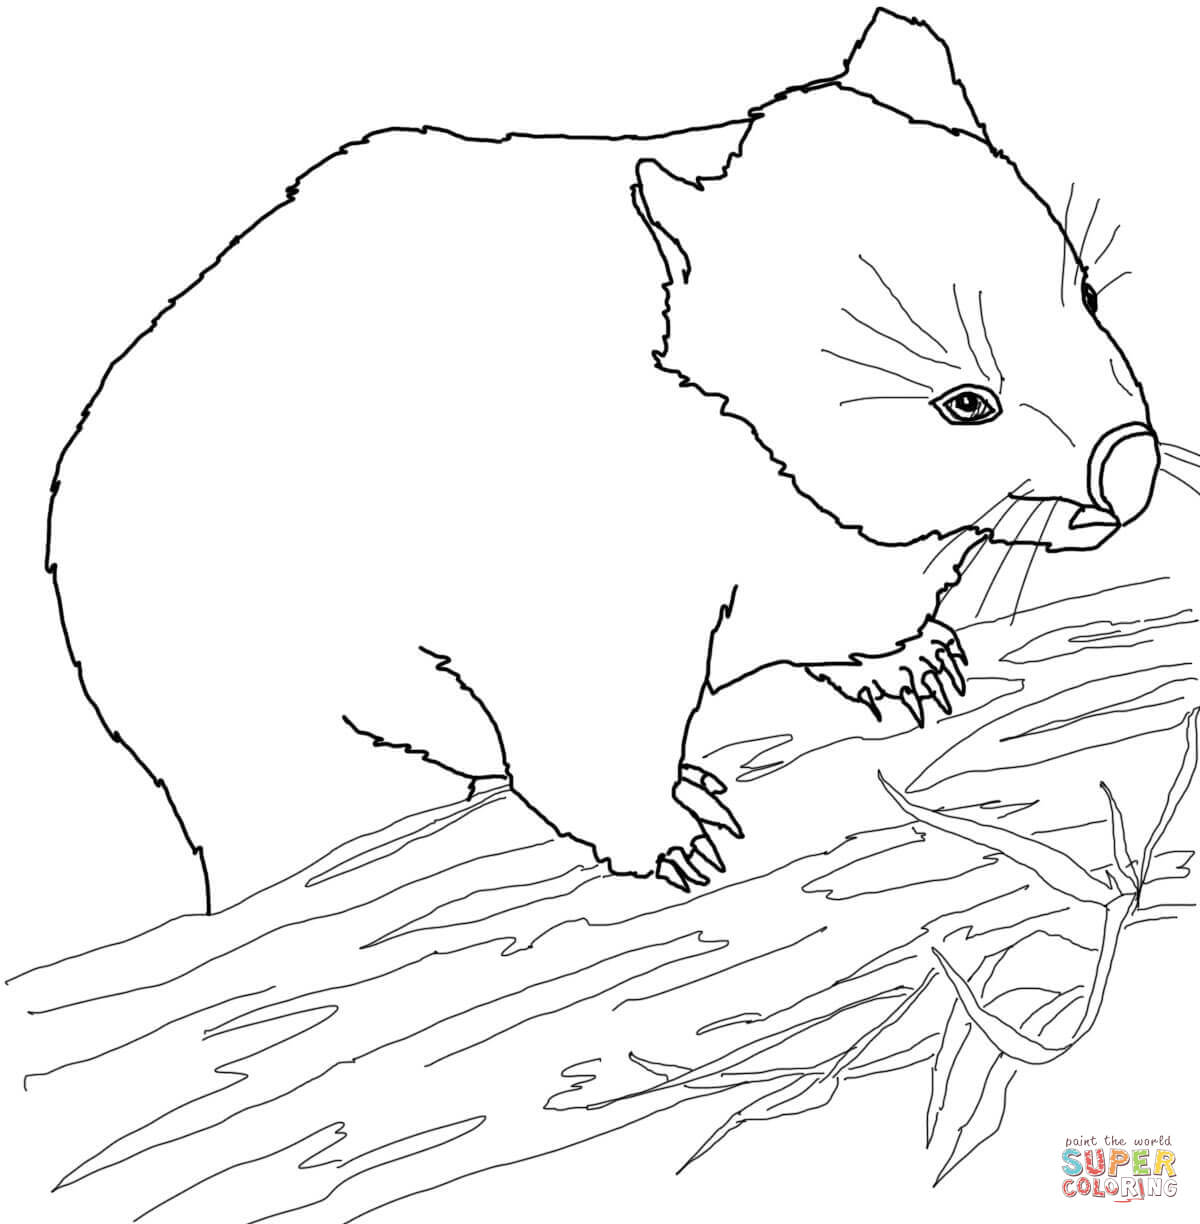 wombat colouring funny wombat coloring page free printable coloring pages colouring wombat